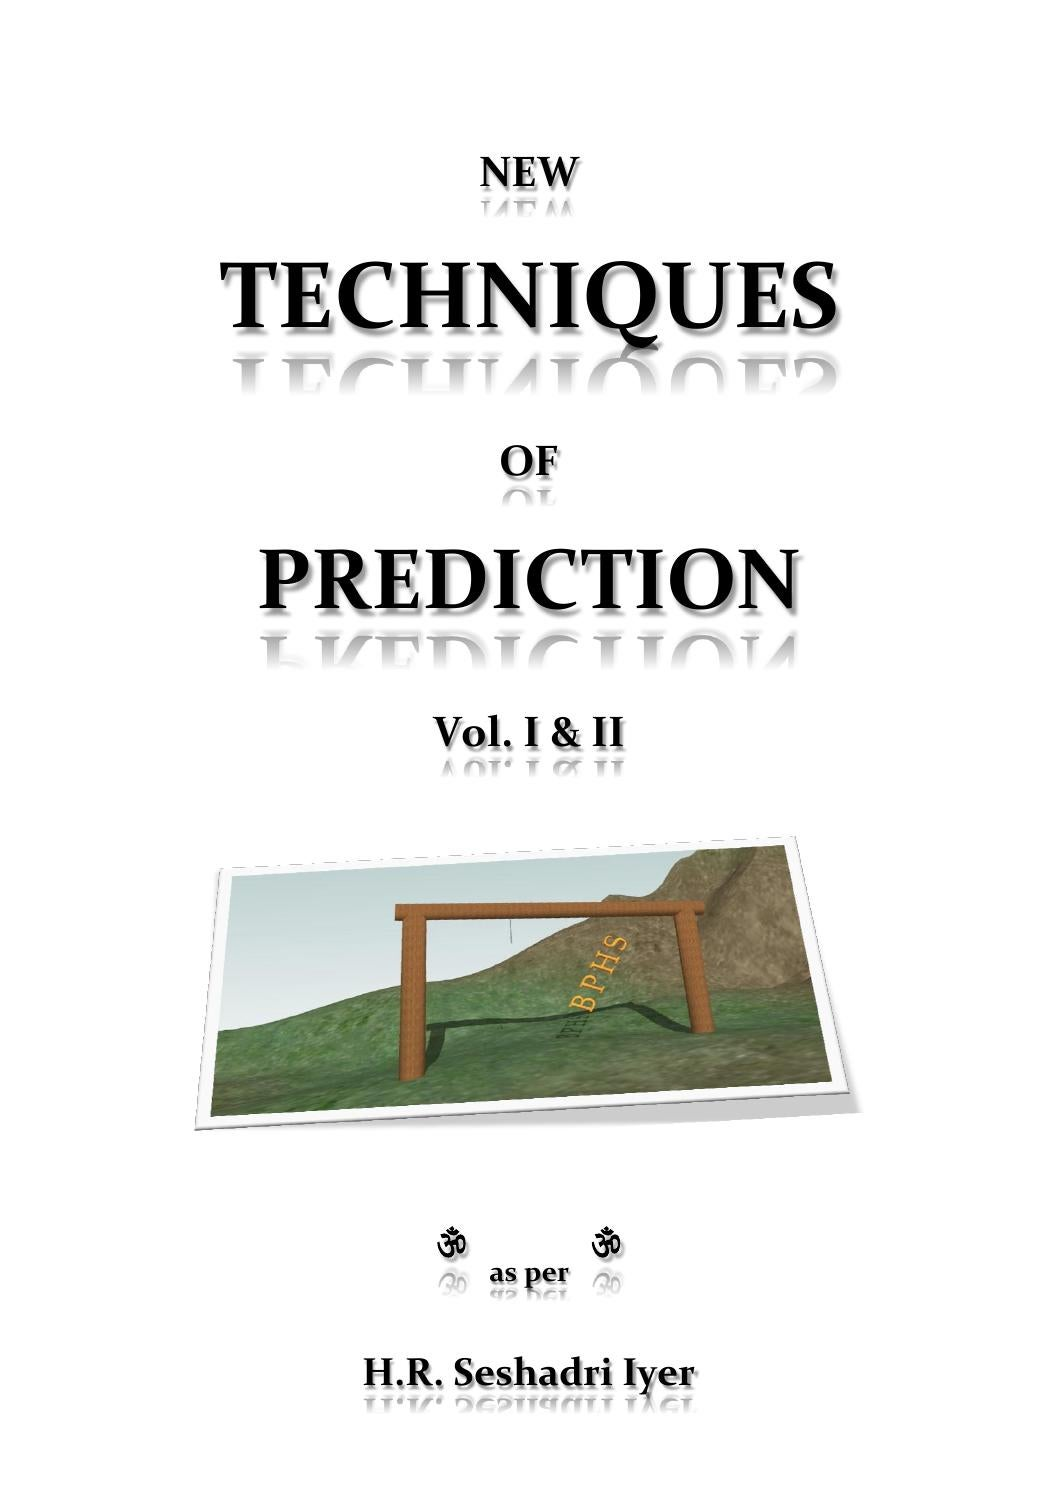 New techniques of prediction by sarfraz shah - issuu